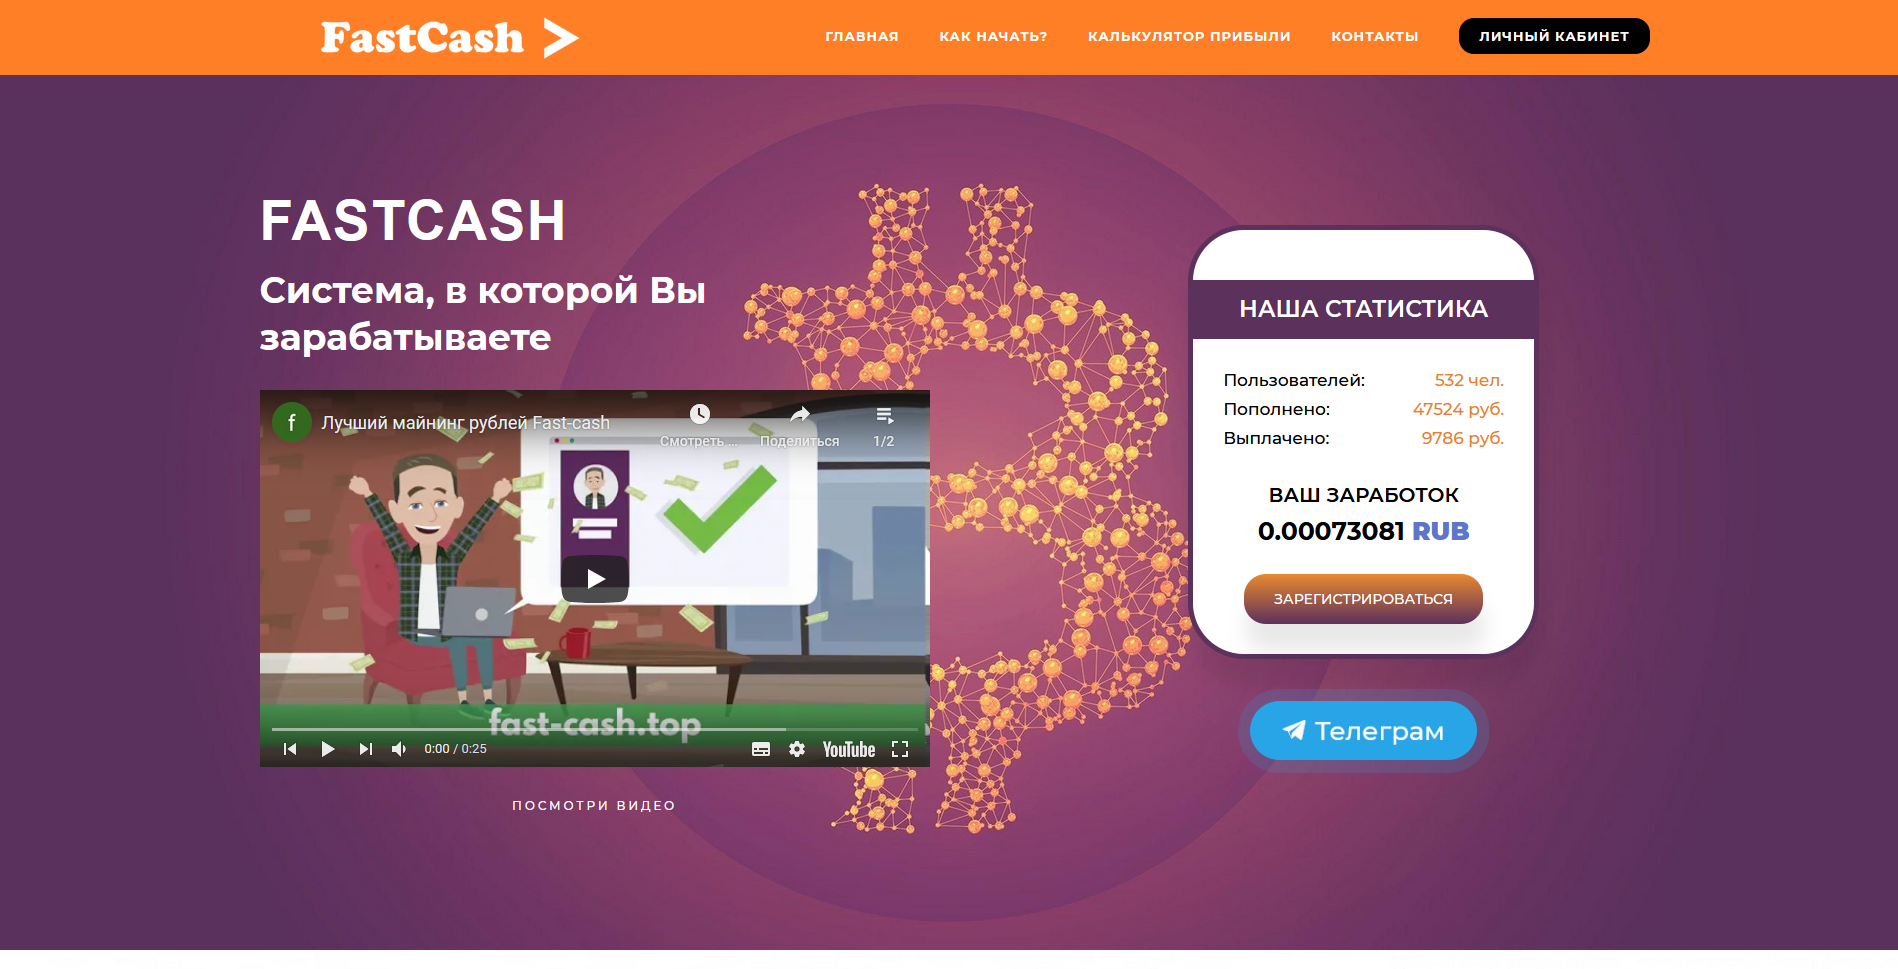 fastcash - fast-cash.top